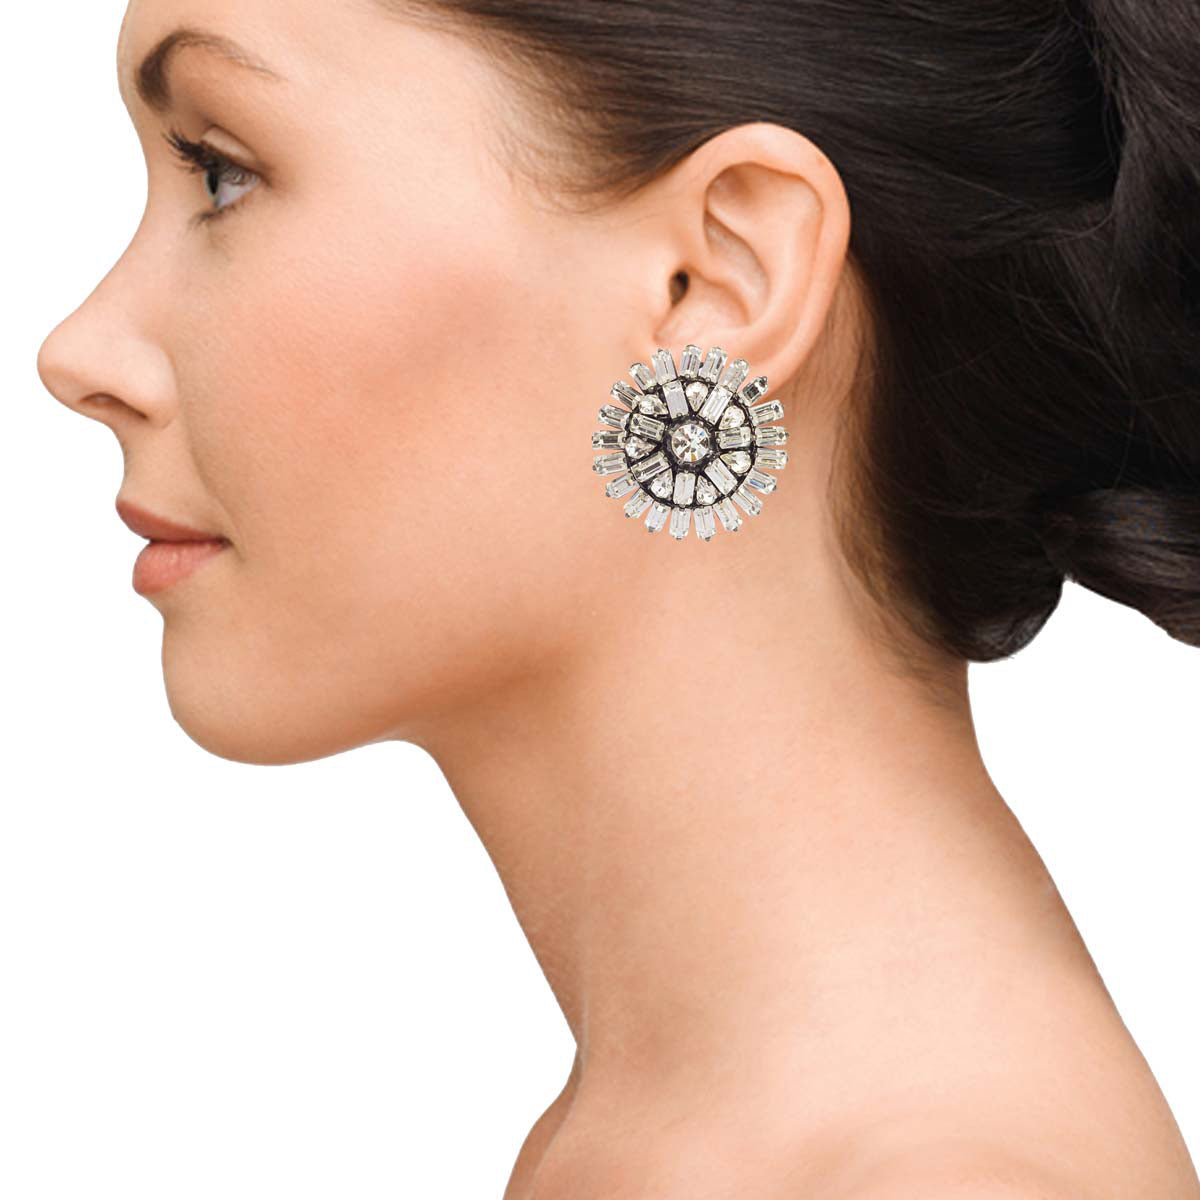 Brussels Earrings